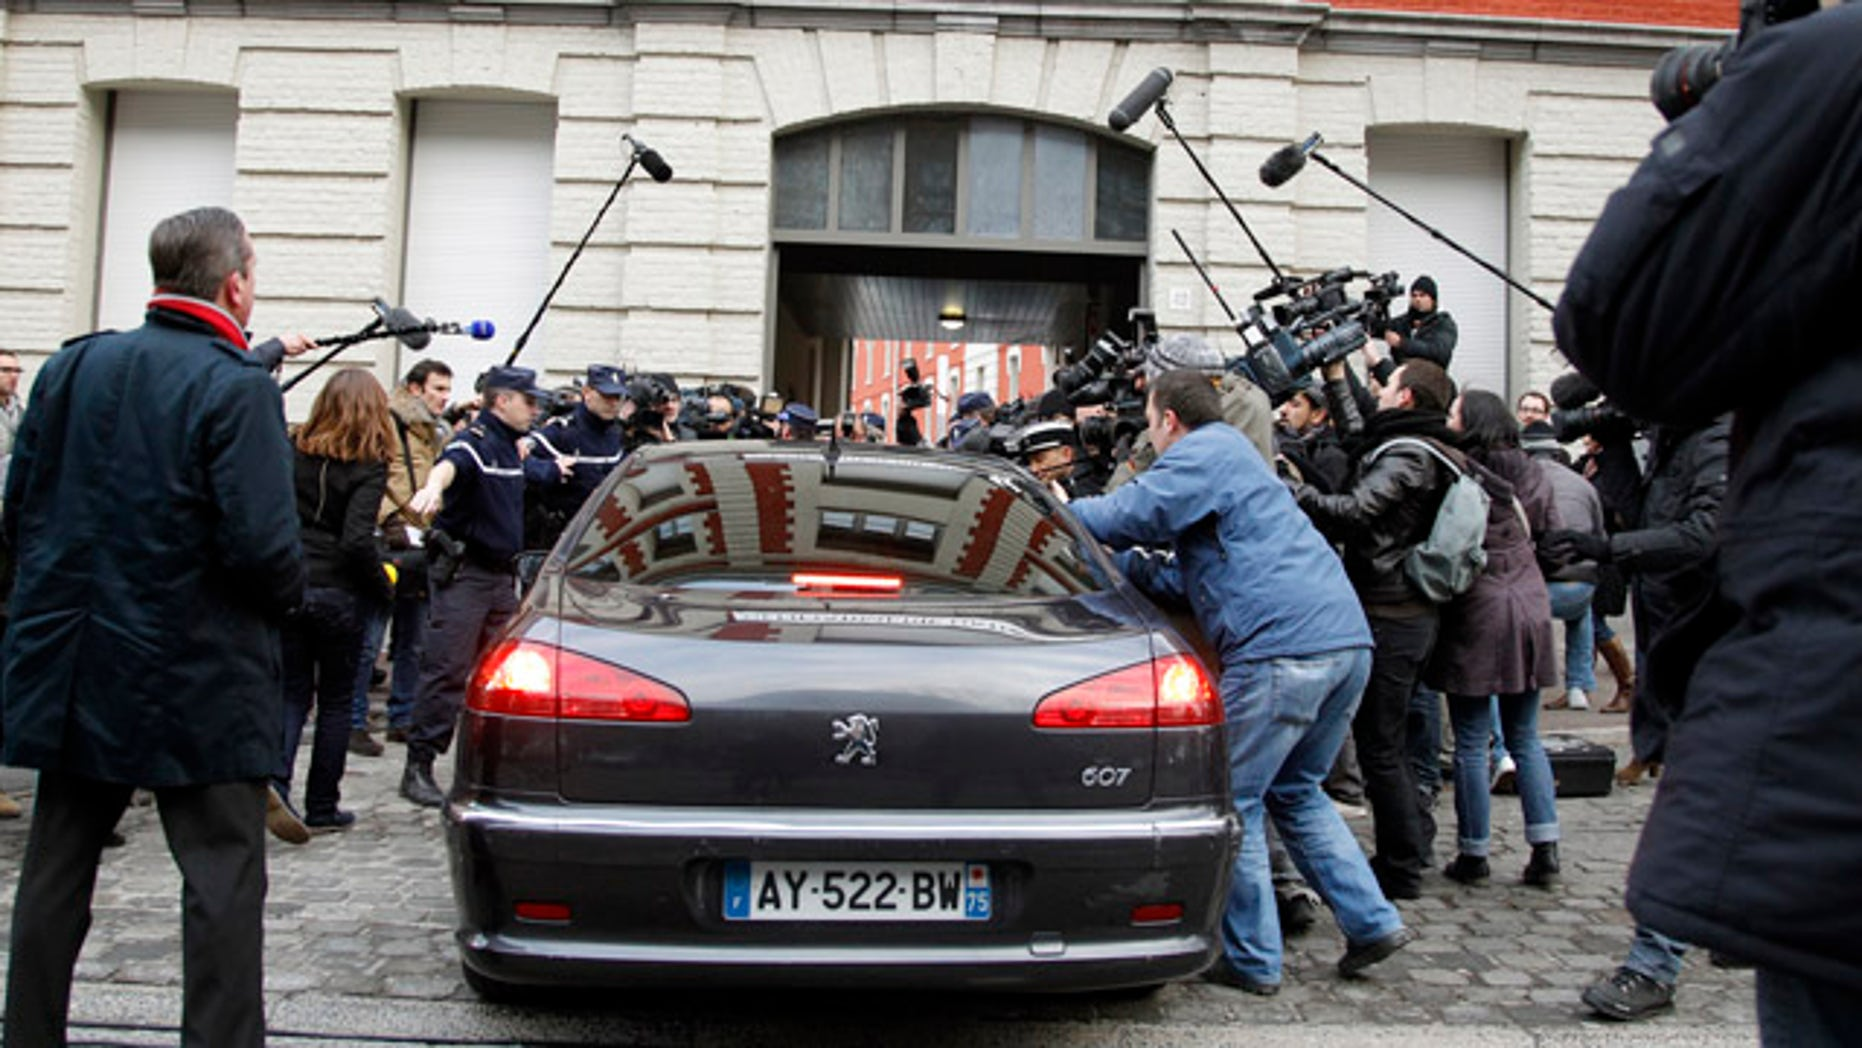 Feb. 21: The car of Dominique Strauss-Kahn enters the Gendarmerie surrounded by the media as he arrives for questioning.